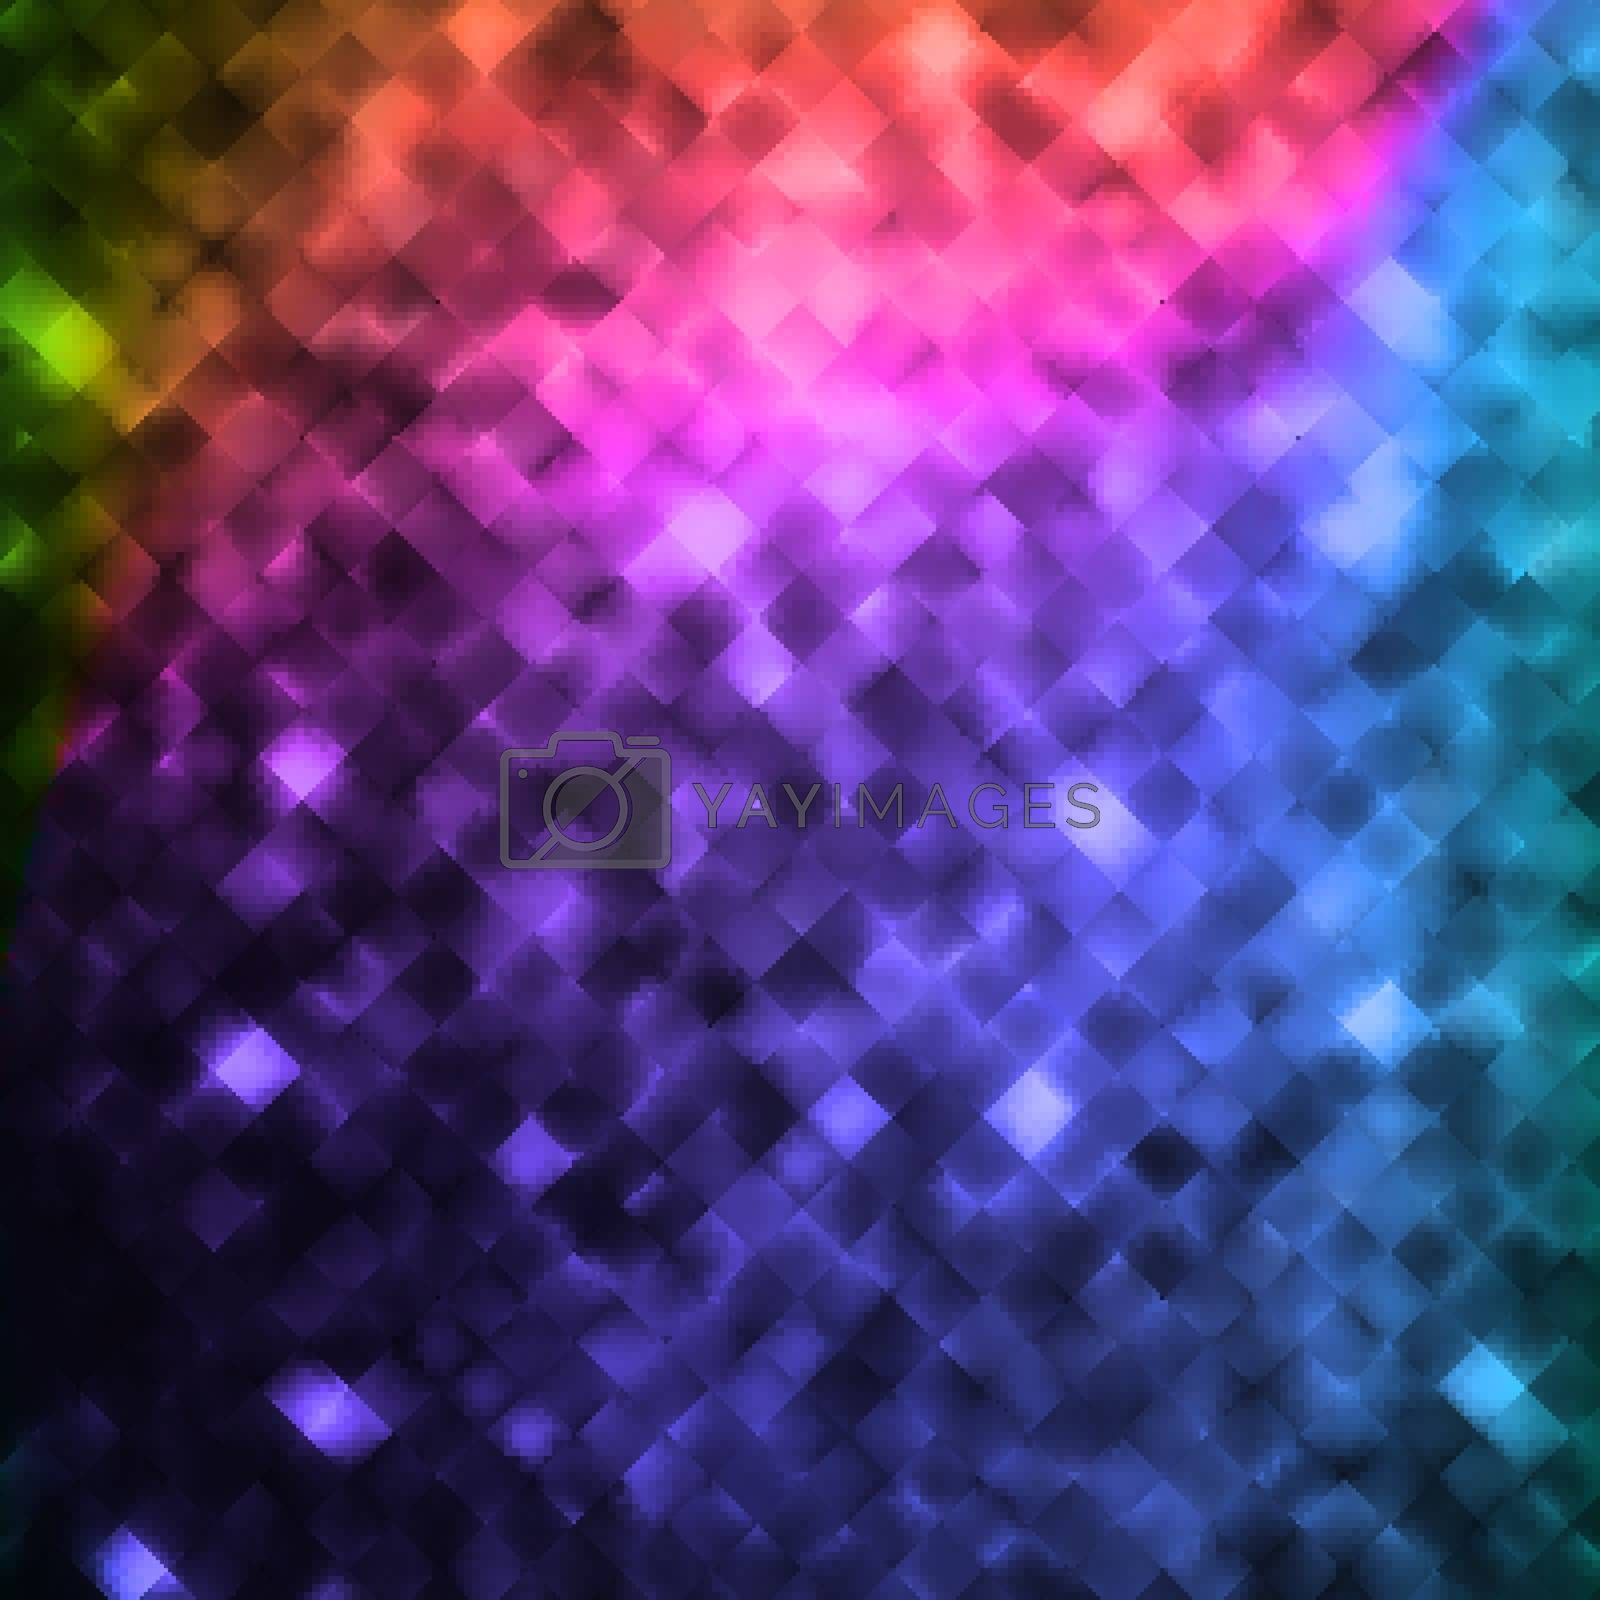 Glitters on a soft blurred background with smooth highlights. EPS 10 vector file included